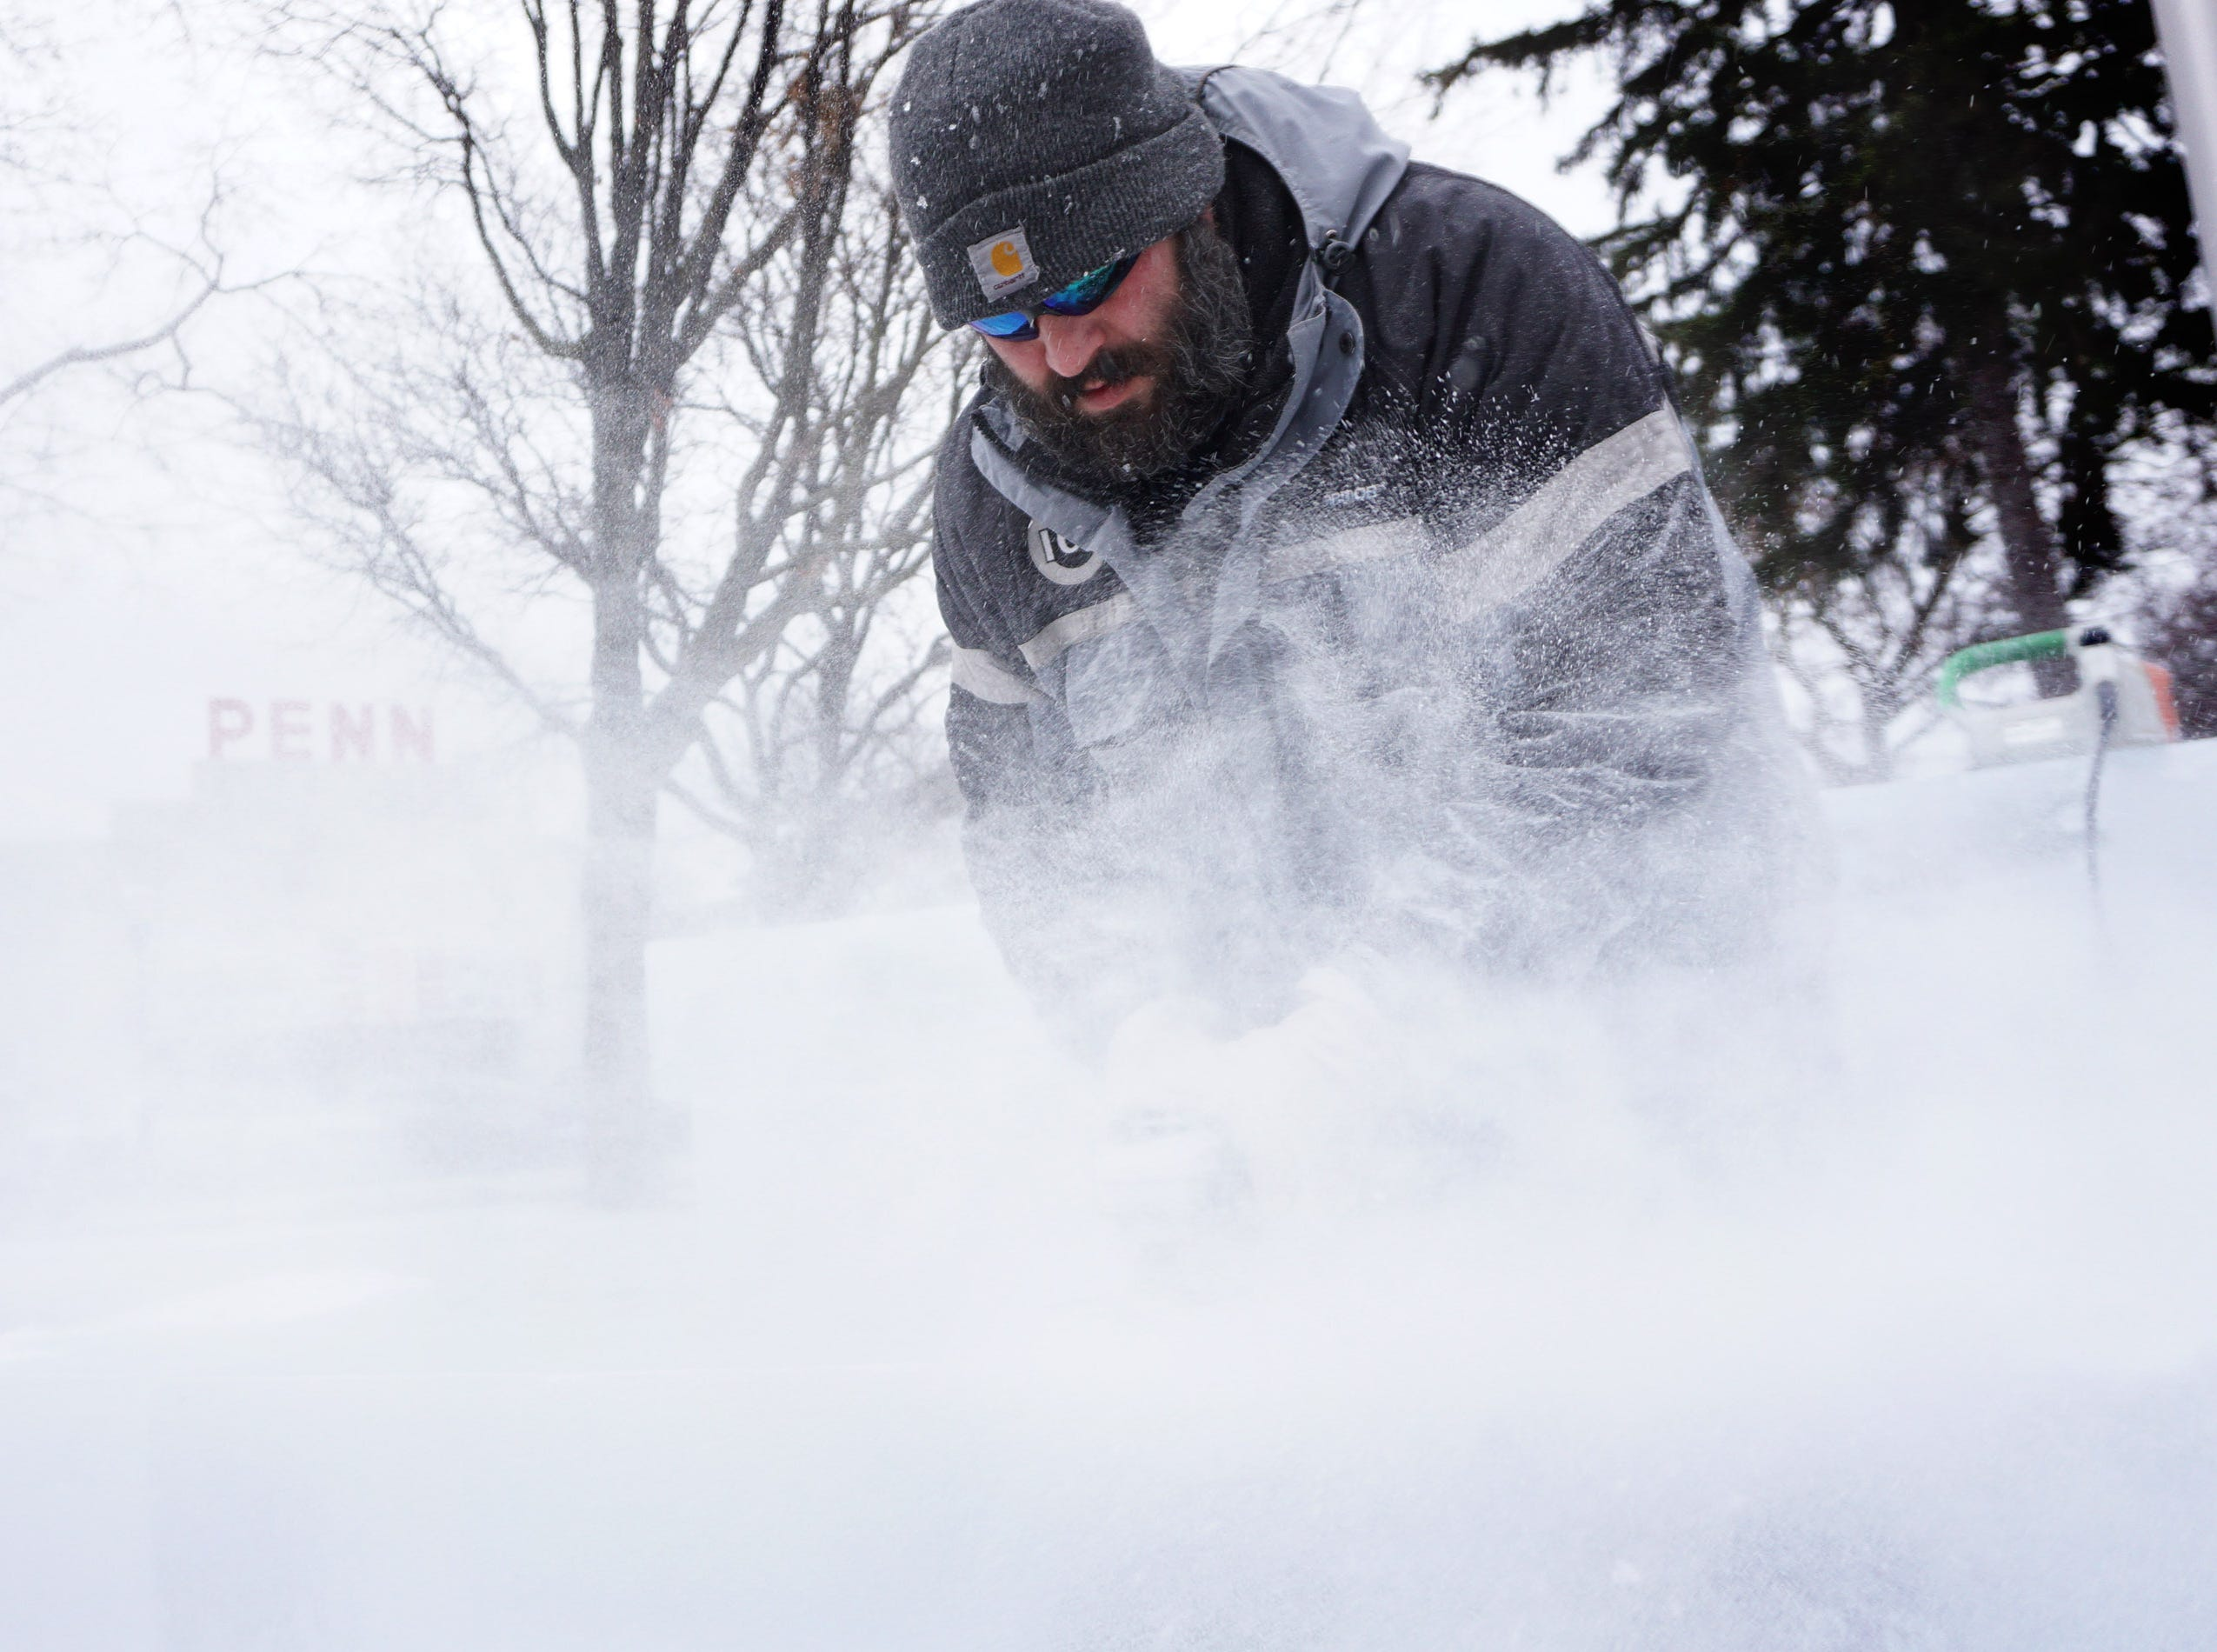 A cloud of flying ice dusts surrounds Jeff Meyers as he prepares blocks of ice for carving at the Plymouth Ice Festival that runs Jan. 11-13.